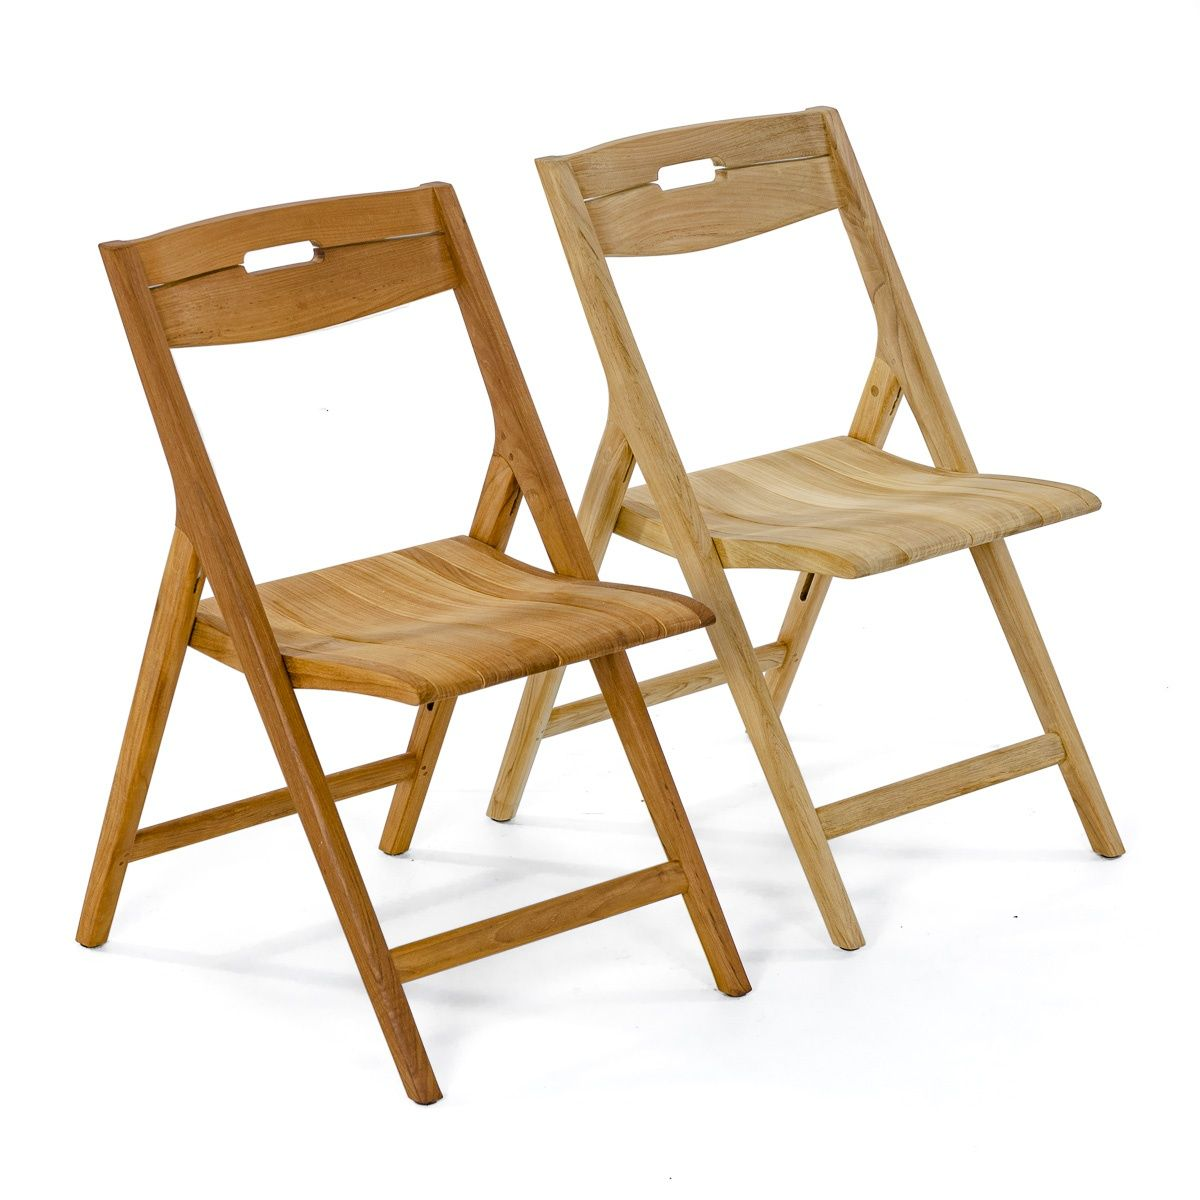 Furniture Care Teak Chairs Westminster Teak Teak Patio Furniture